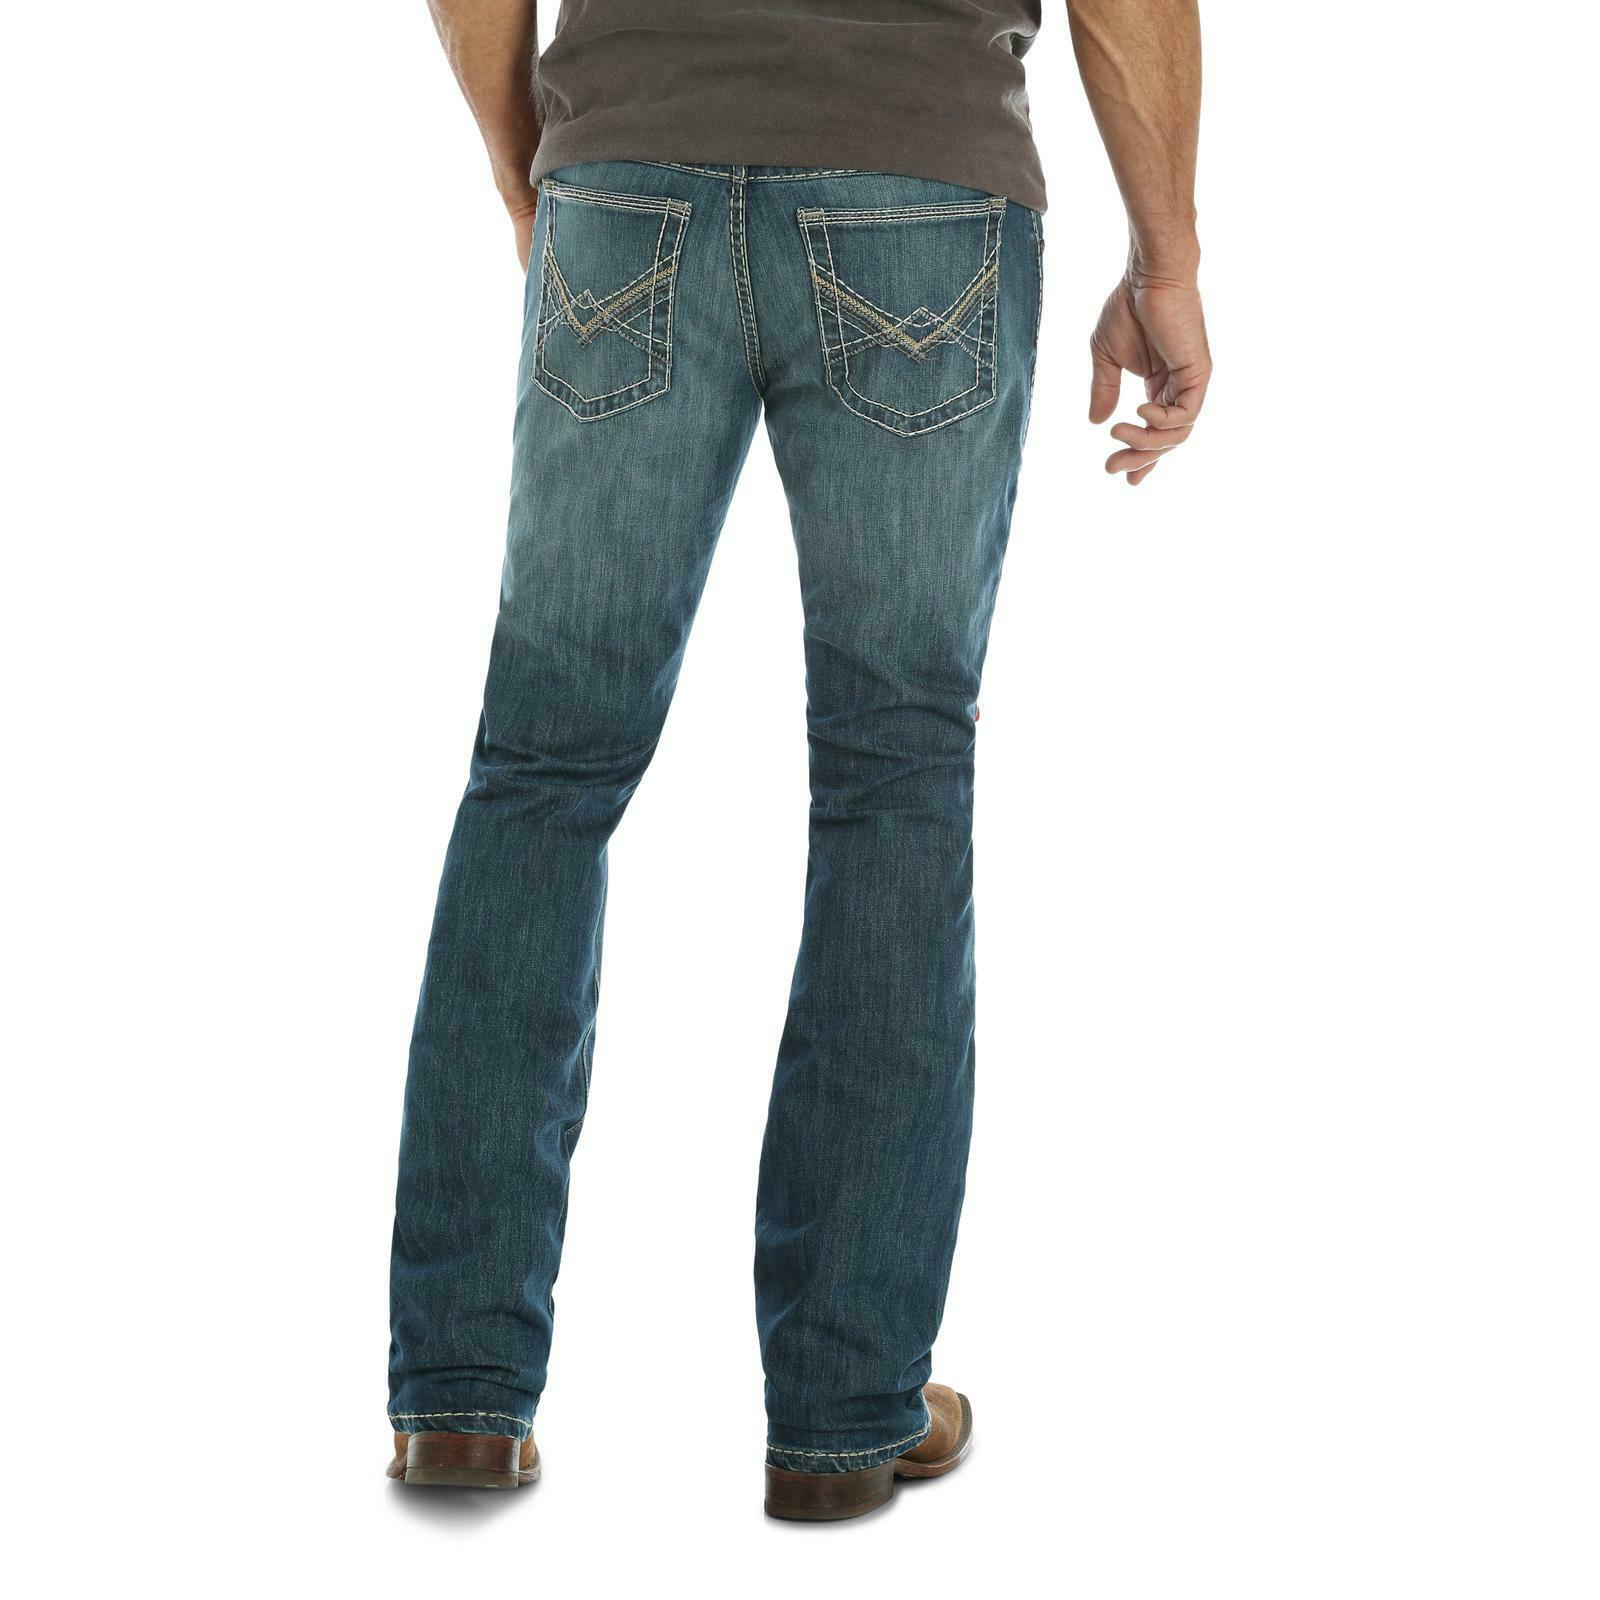 Cinch Mens Garth Brooks Sevens by Relaxed Fit Jeans Denim 36W x 34L